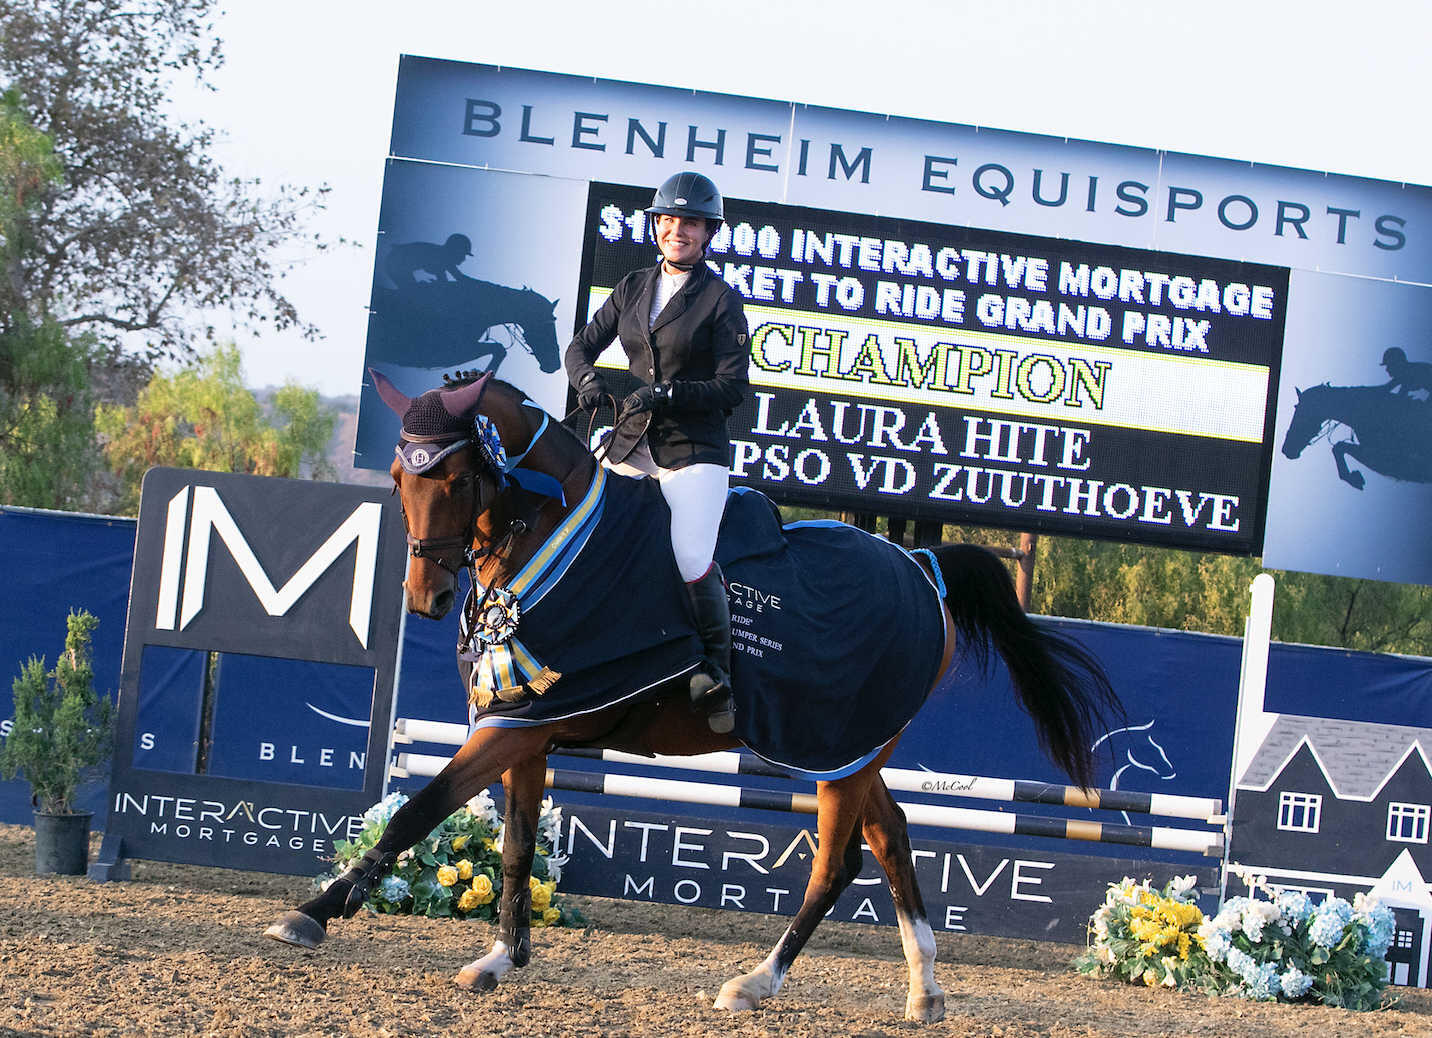 Laura Hite and Calypso VD Zuutheove are all smiles leading the victory gallop.